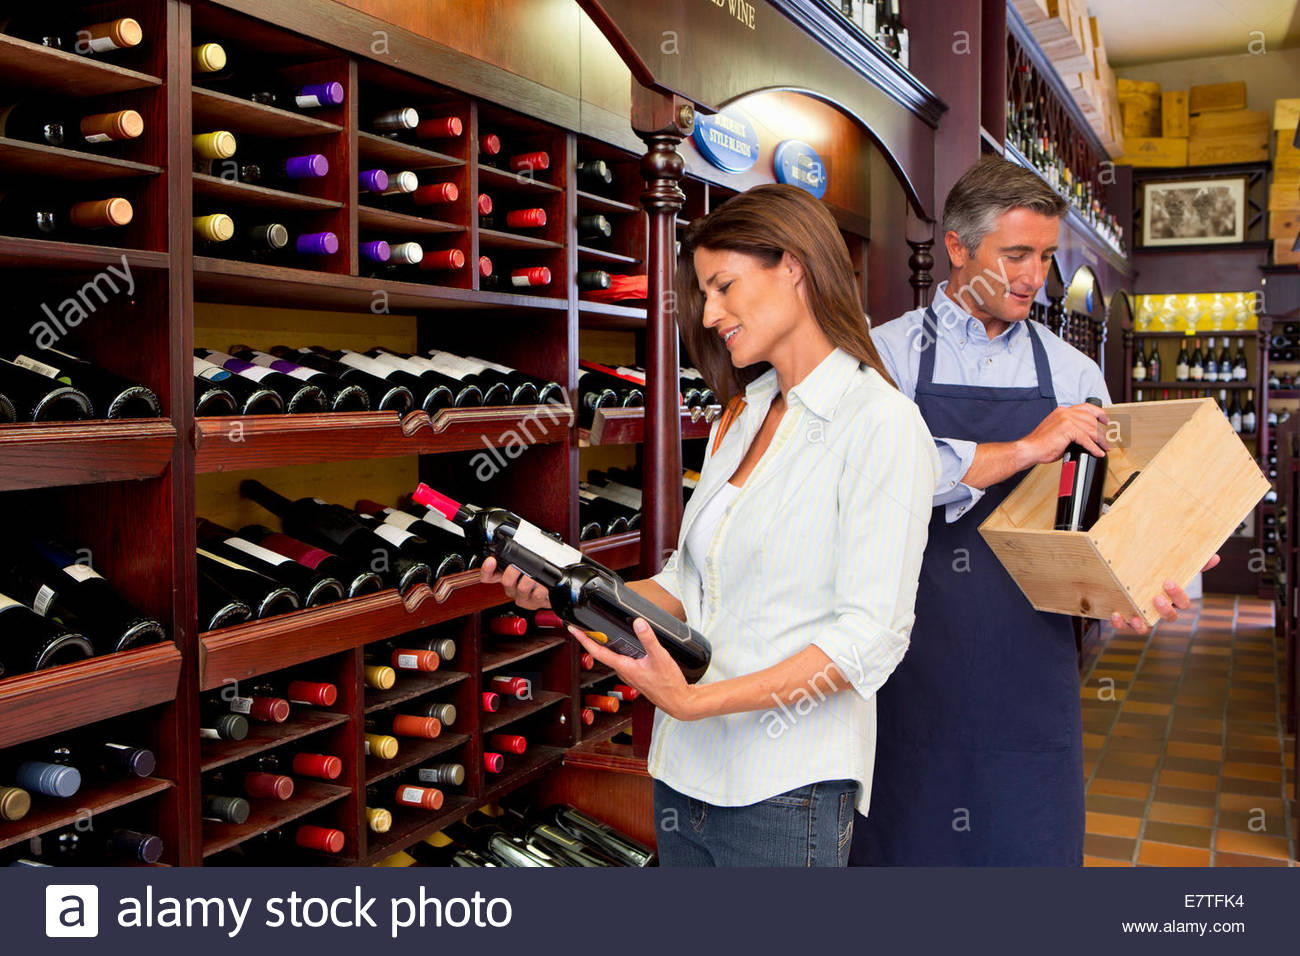 Smiling customer and  worker examining bottles in wine shop Stock Photo